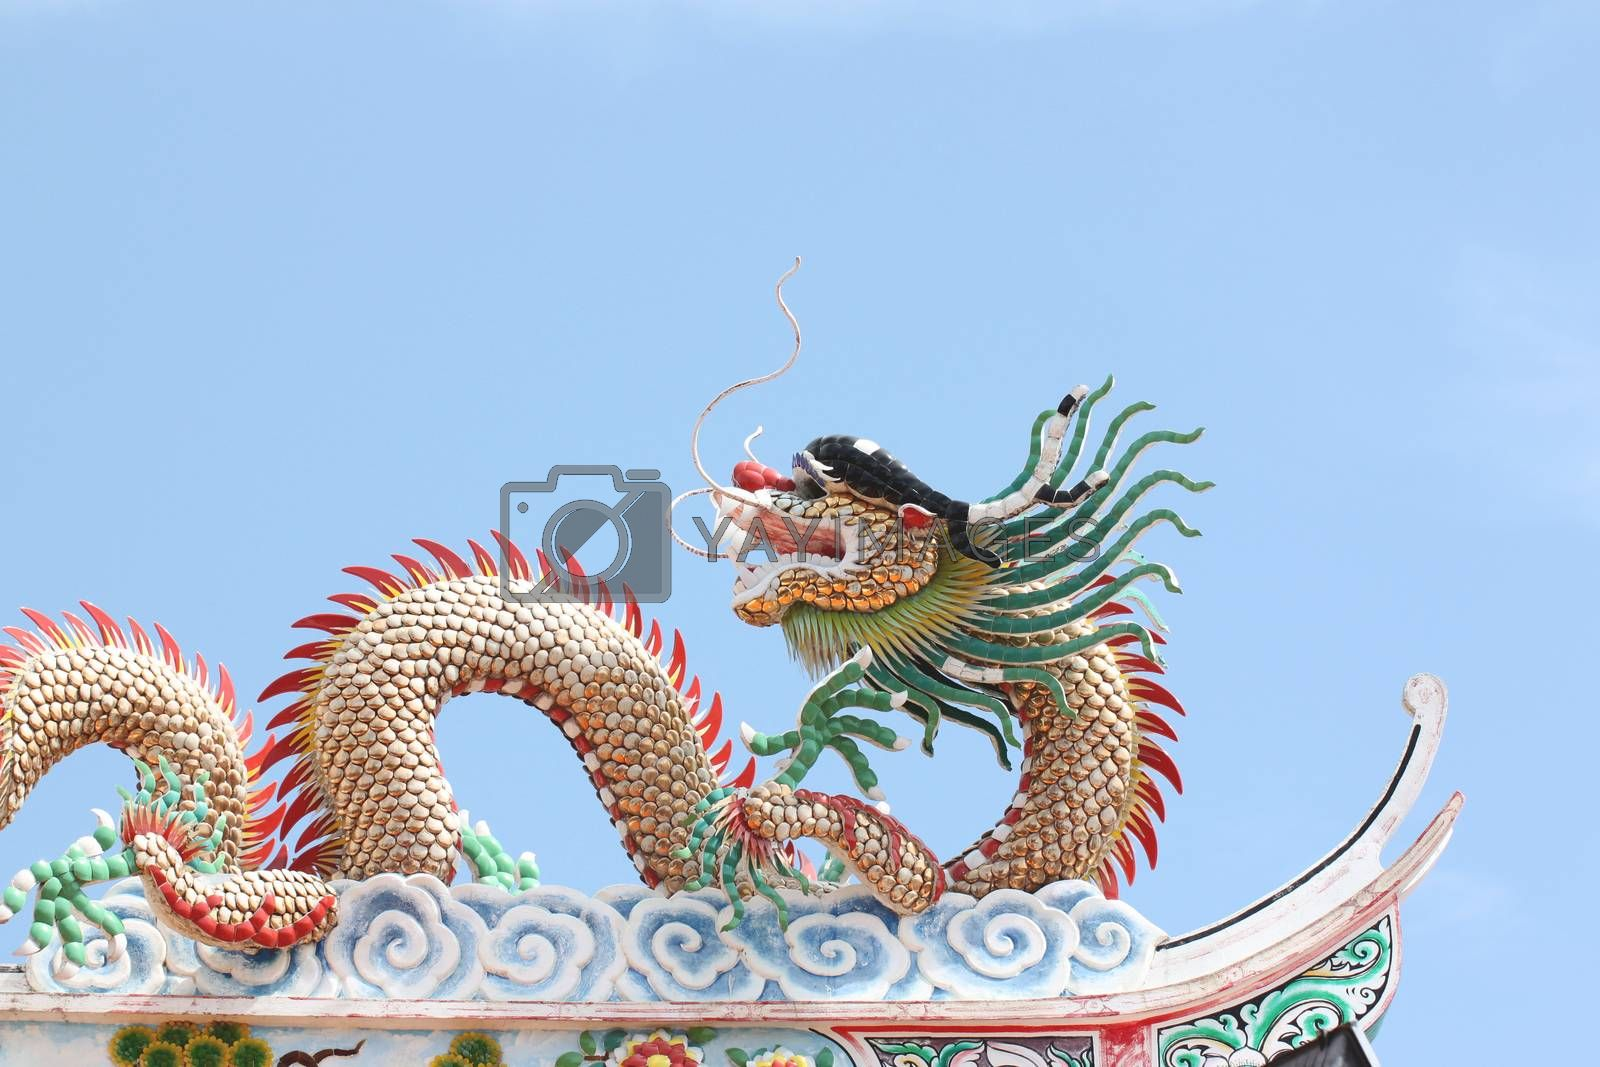 Dragon sculpture in Chinese temple on blue sky background,Thailand.